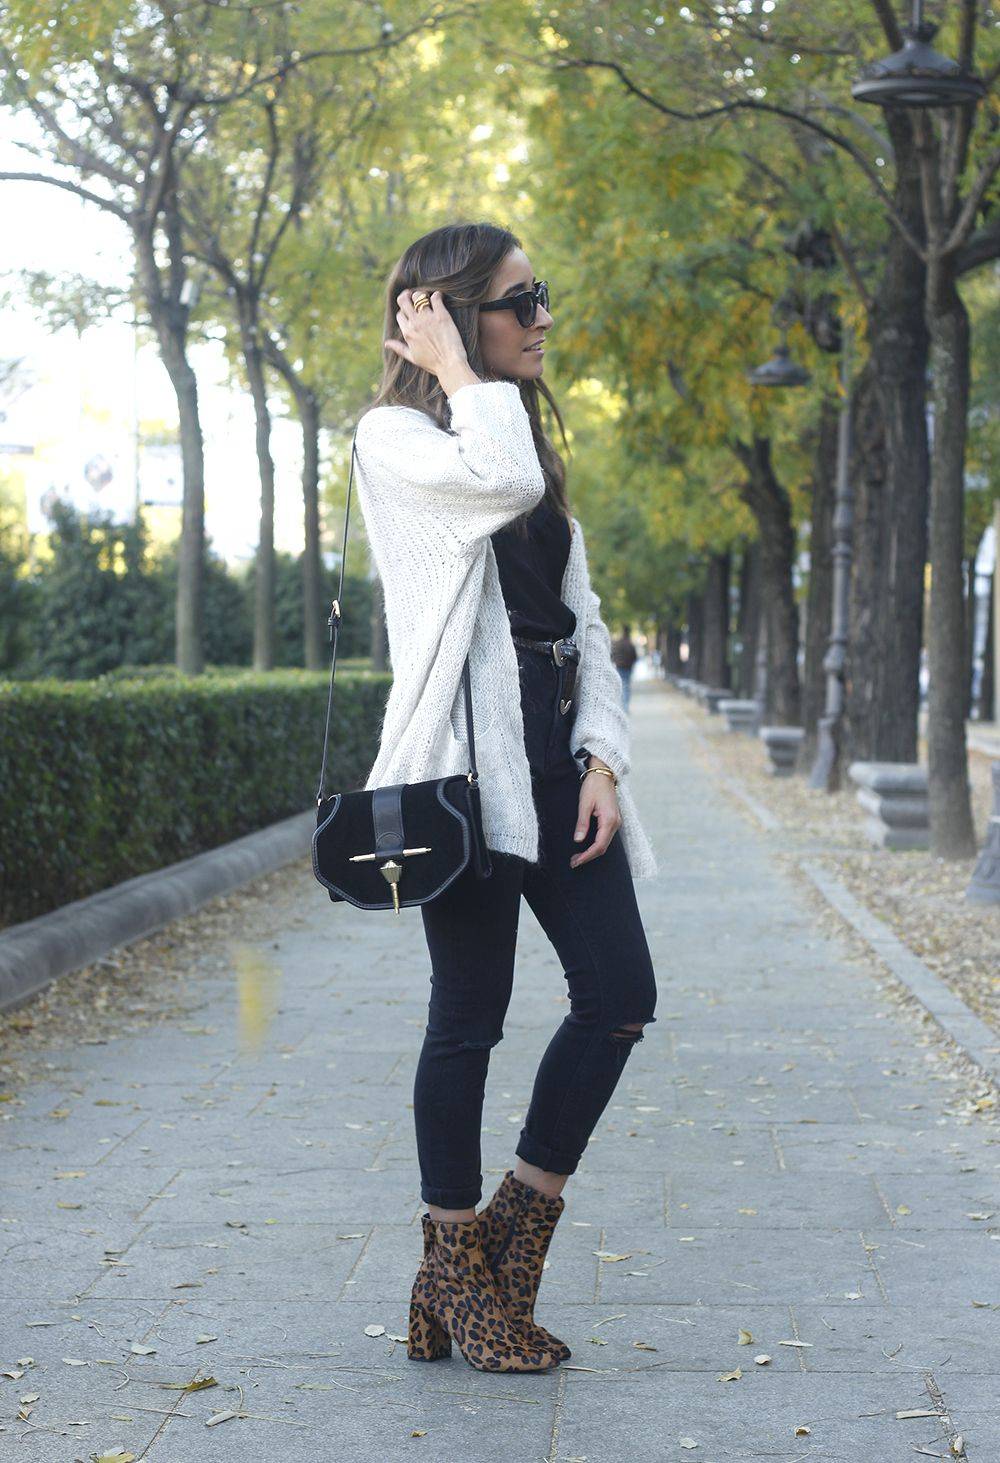 Leopard Booties cardigan ripped jeans outfit fall style fashion05